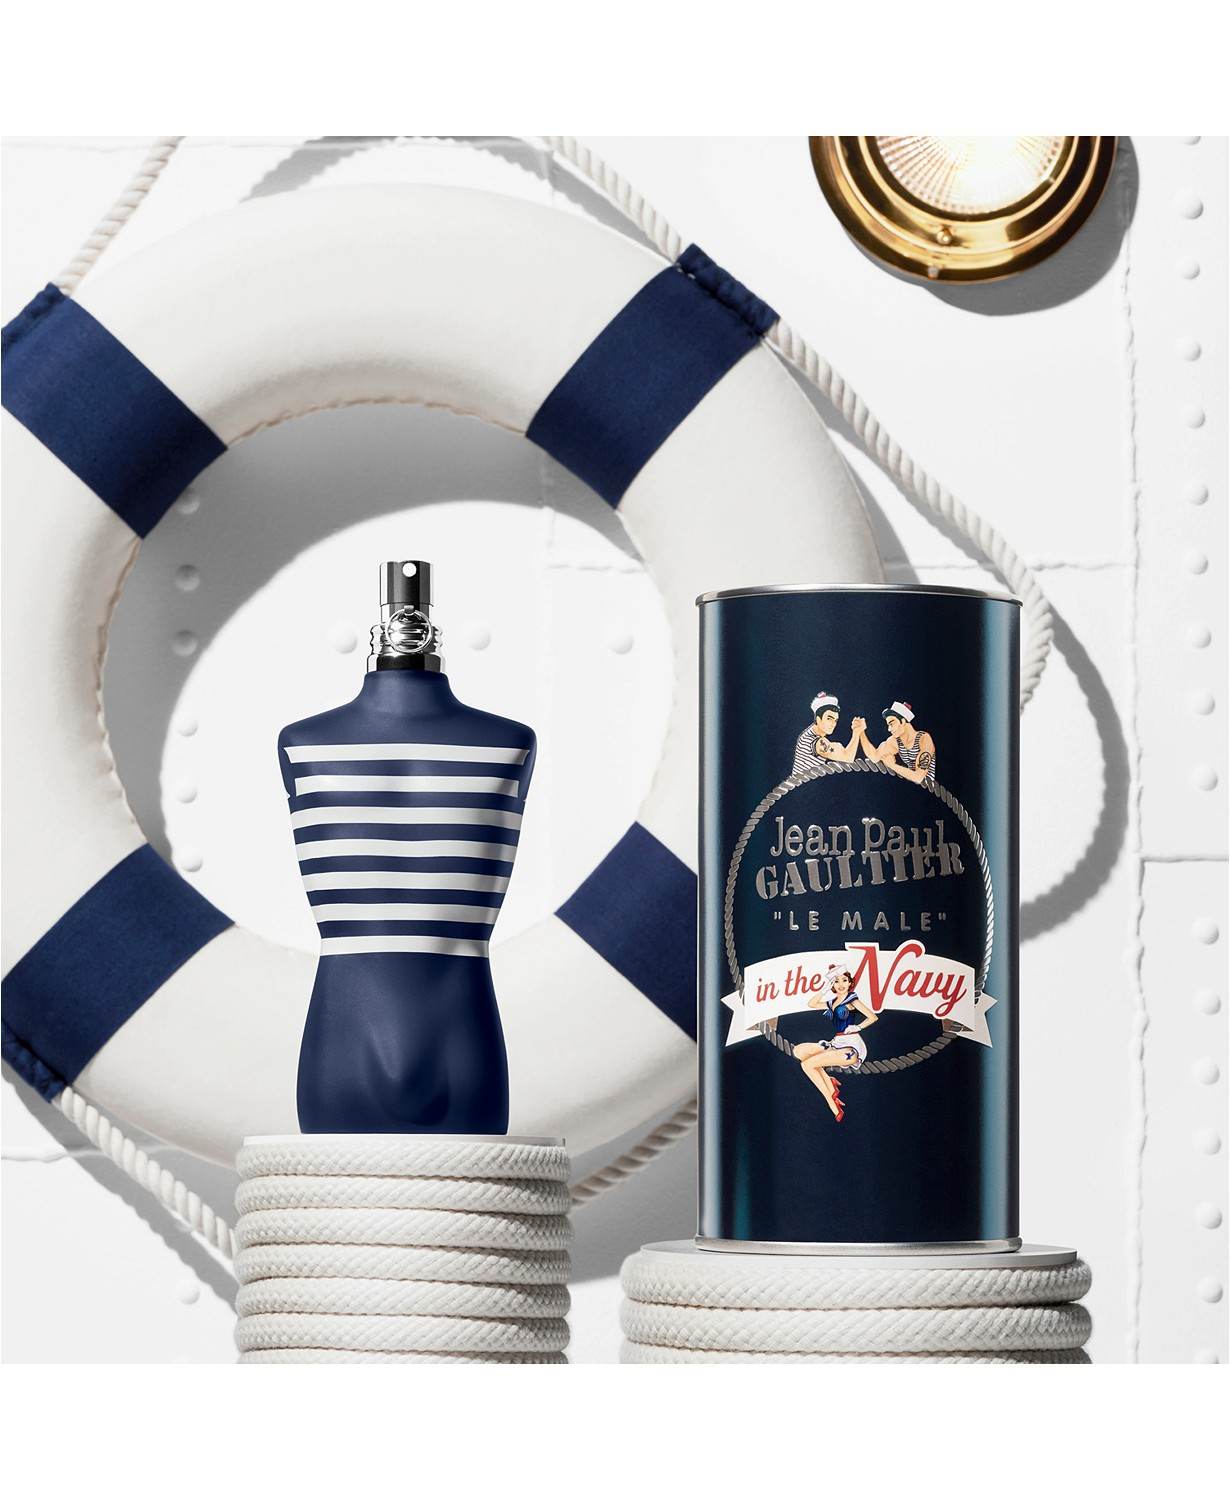 Le Paul Jean Male In The Gaultier Navy For Men tsQrdh